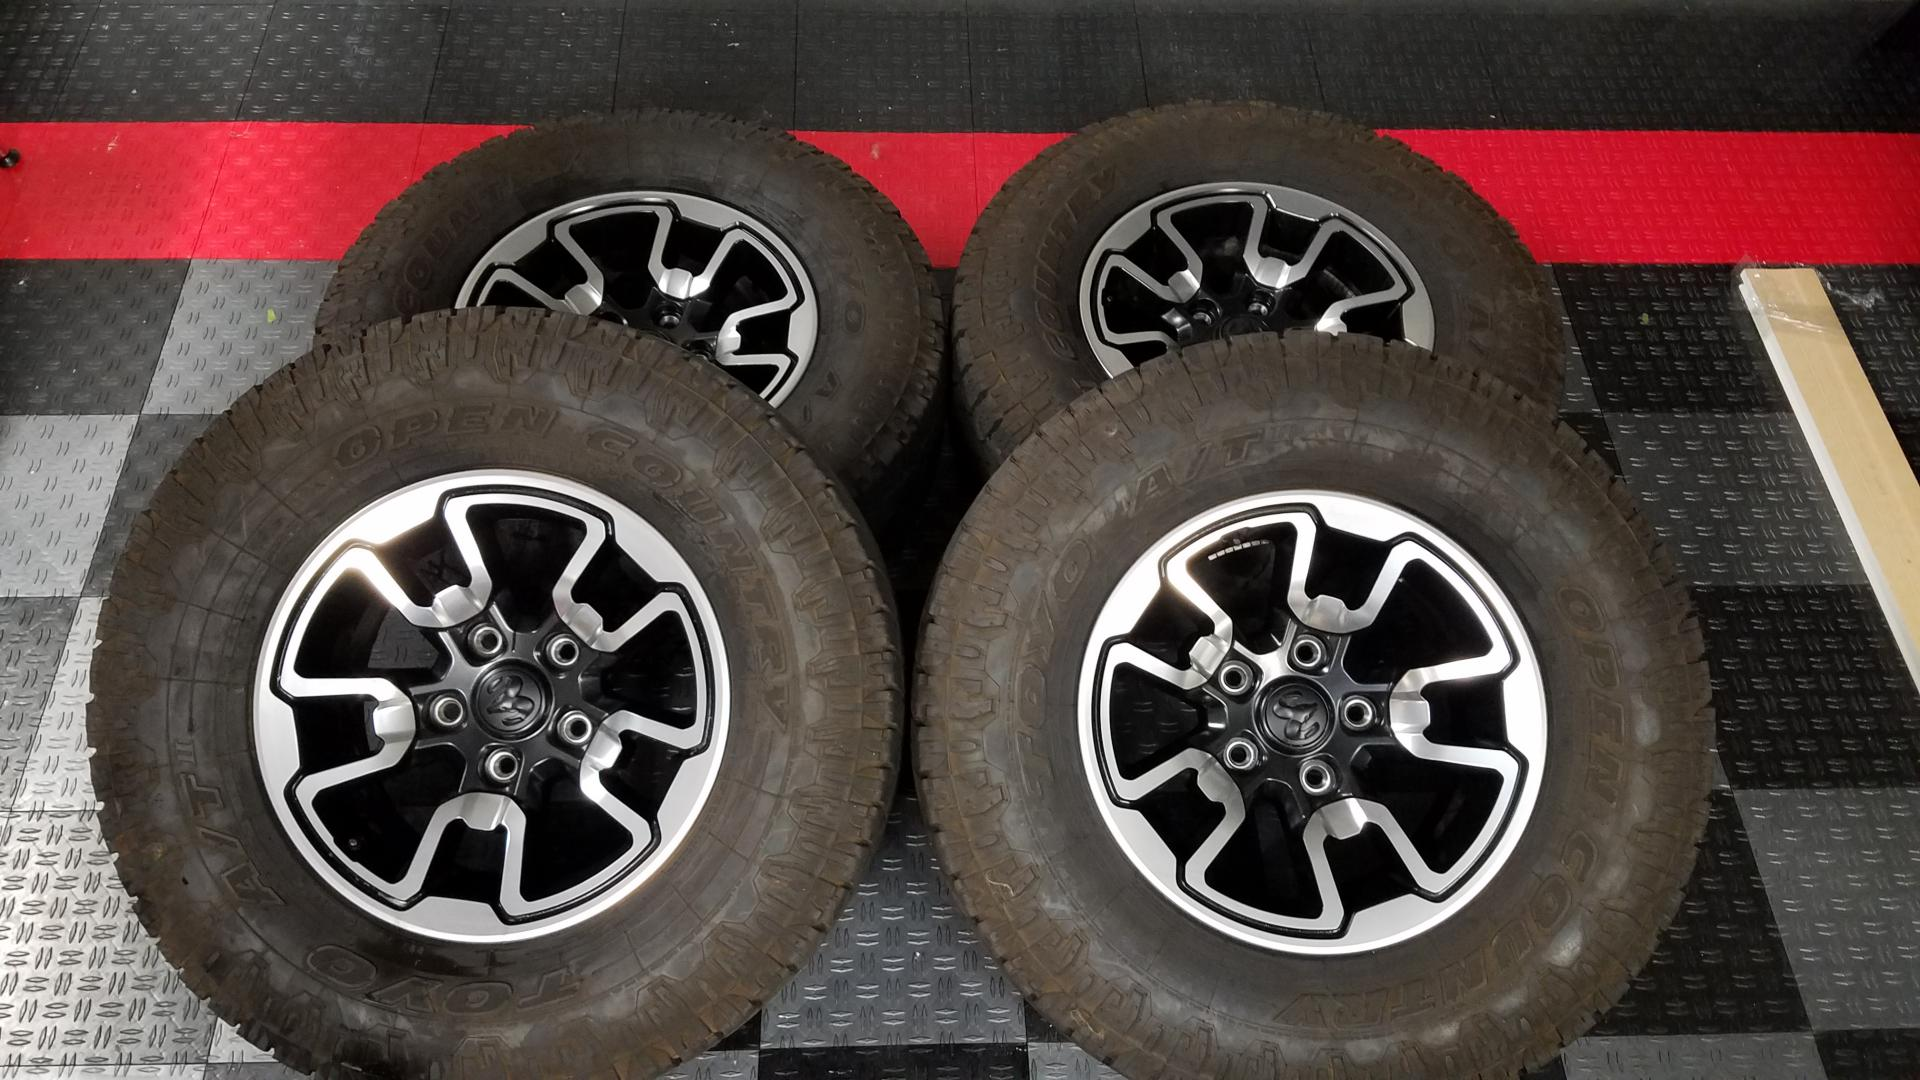 2016 OEM Wheels & Tires For Sale (CA) - Ram Rebel Forum